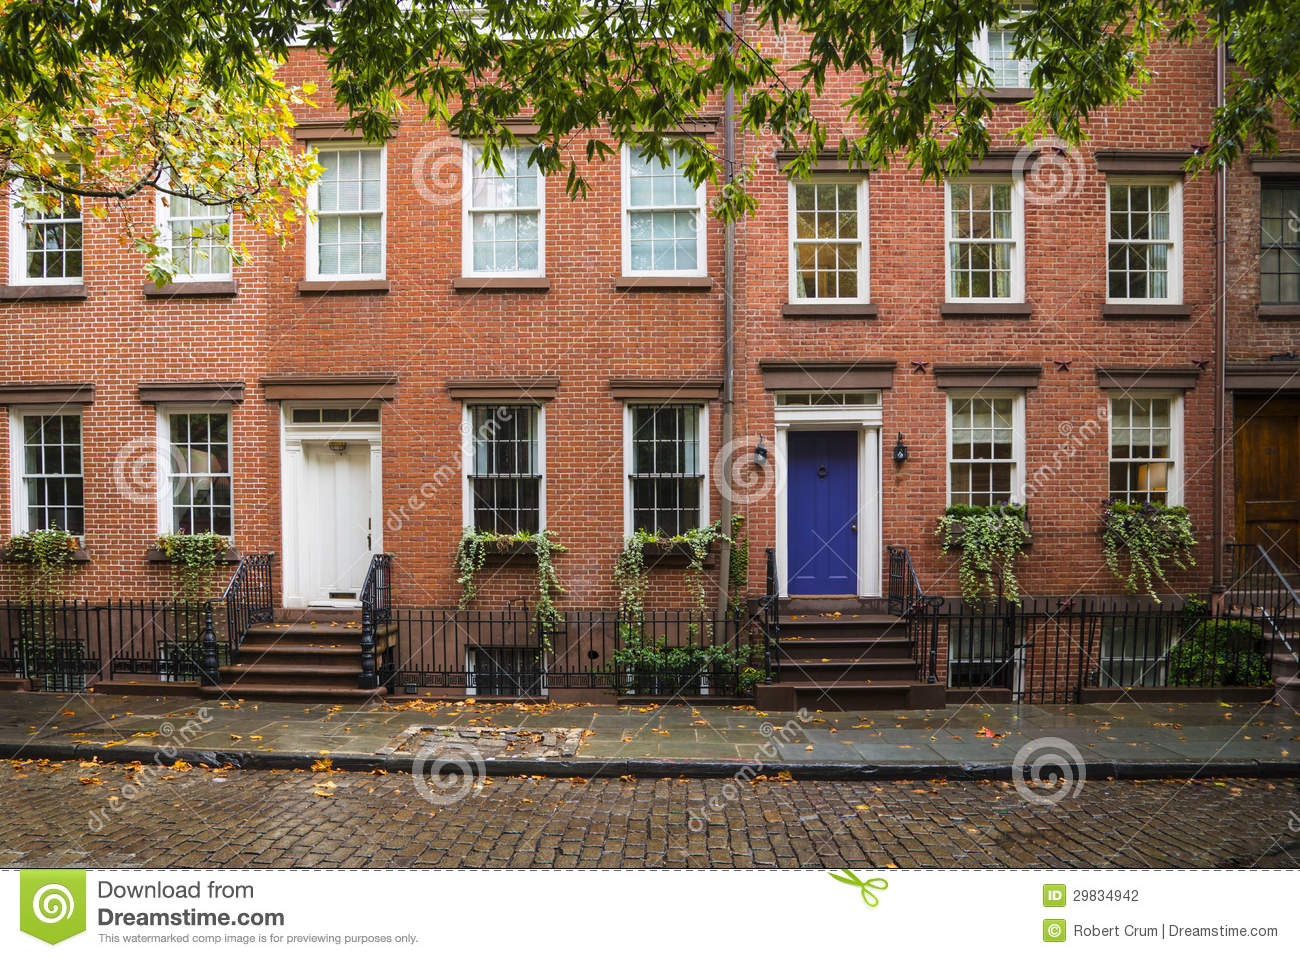 Greenwich village apartment buildings new york city stock for Appartamenti greenwich village new york